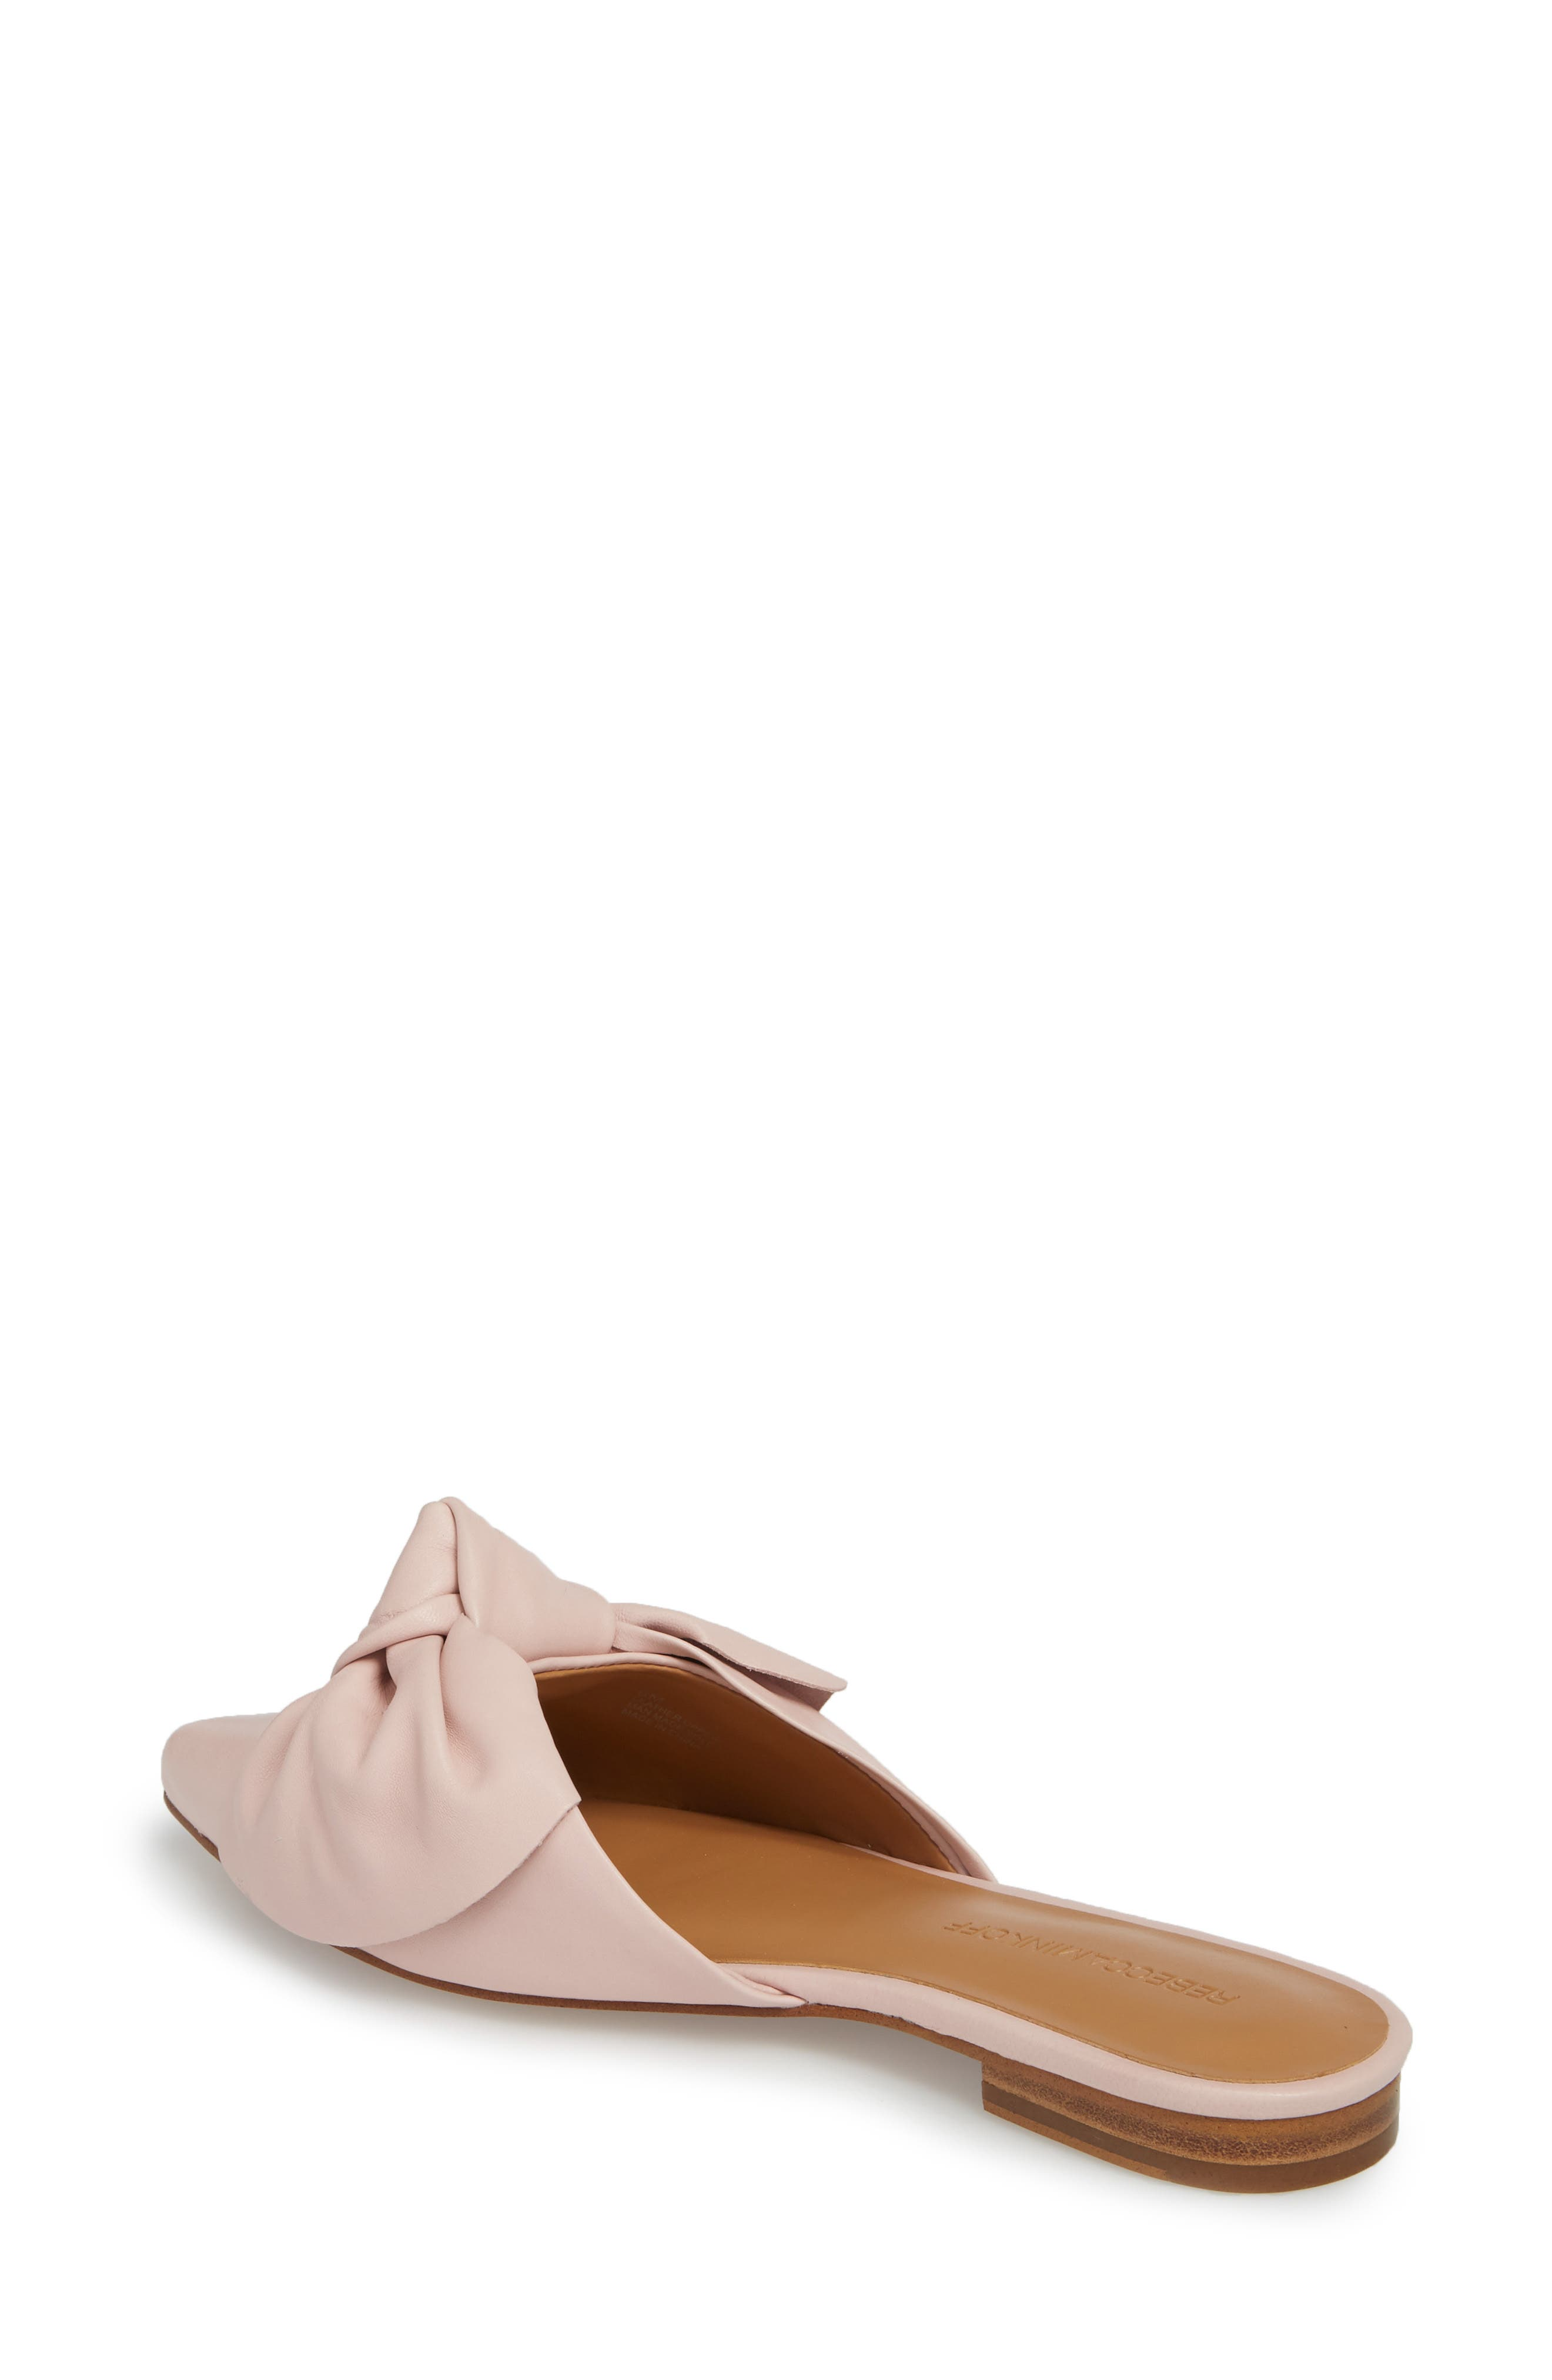 Alexis Bow Mule,                             Alternate thumbnail 2, color,                             MILLENNIAL PINK LEATHER